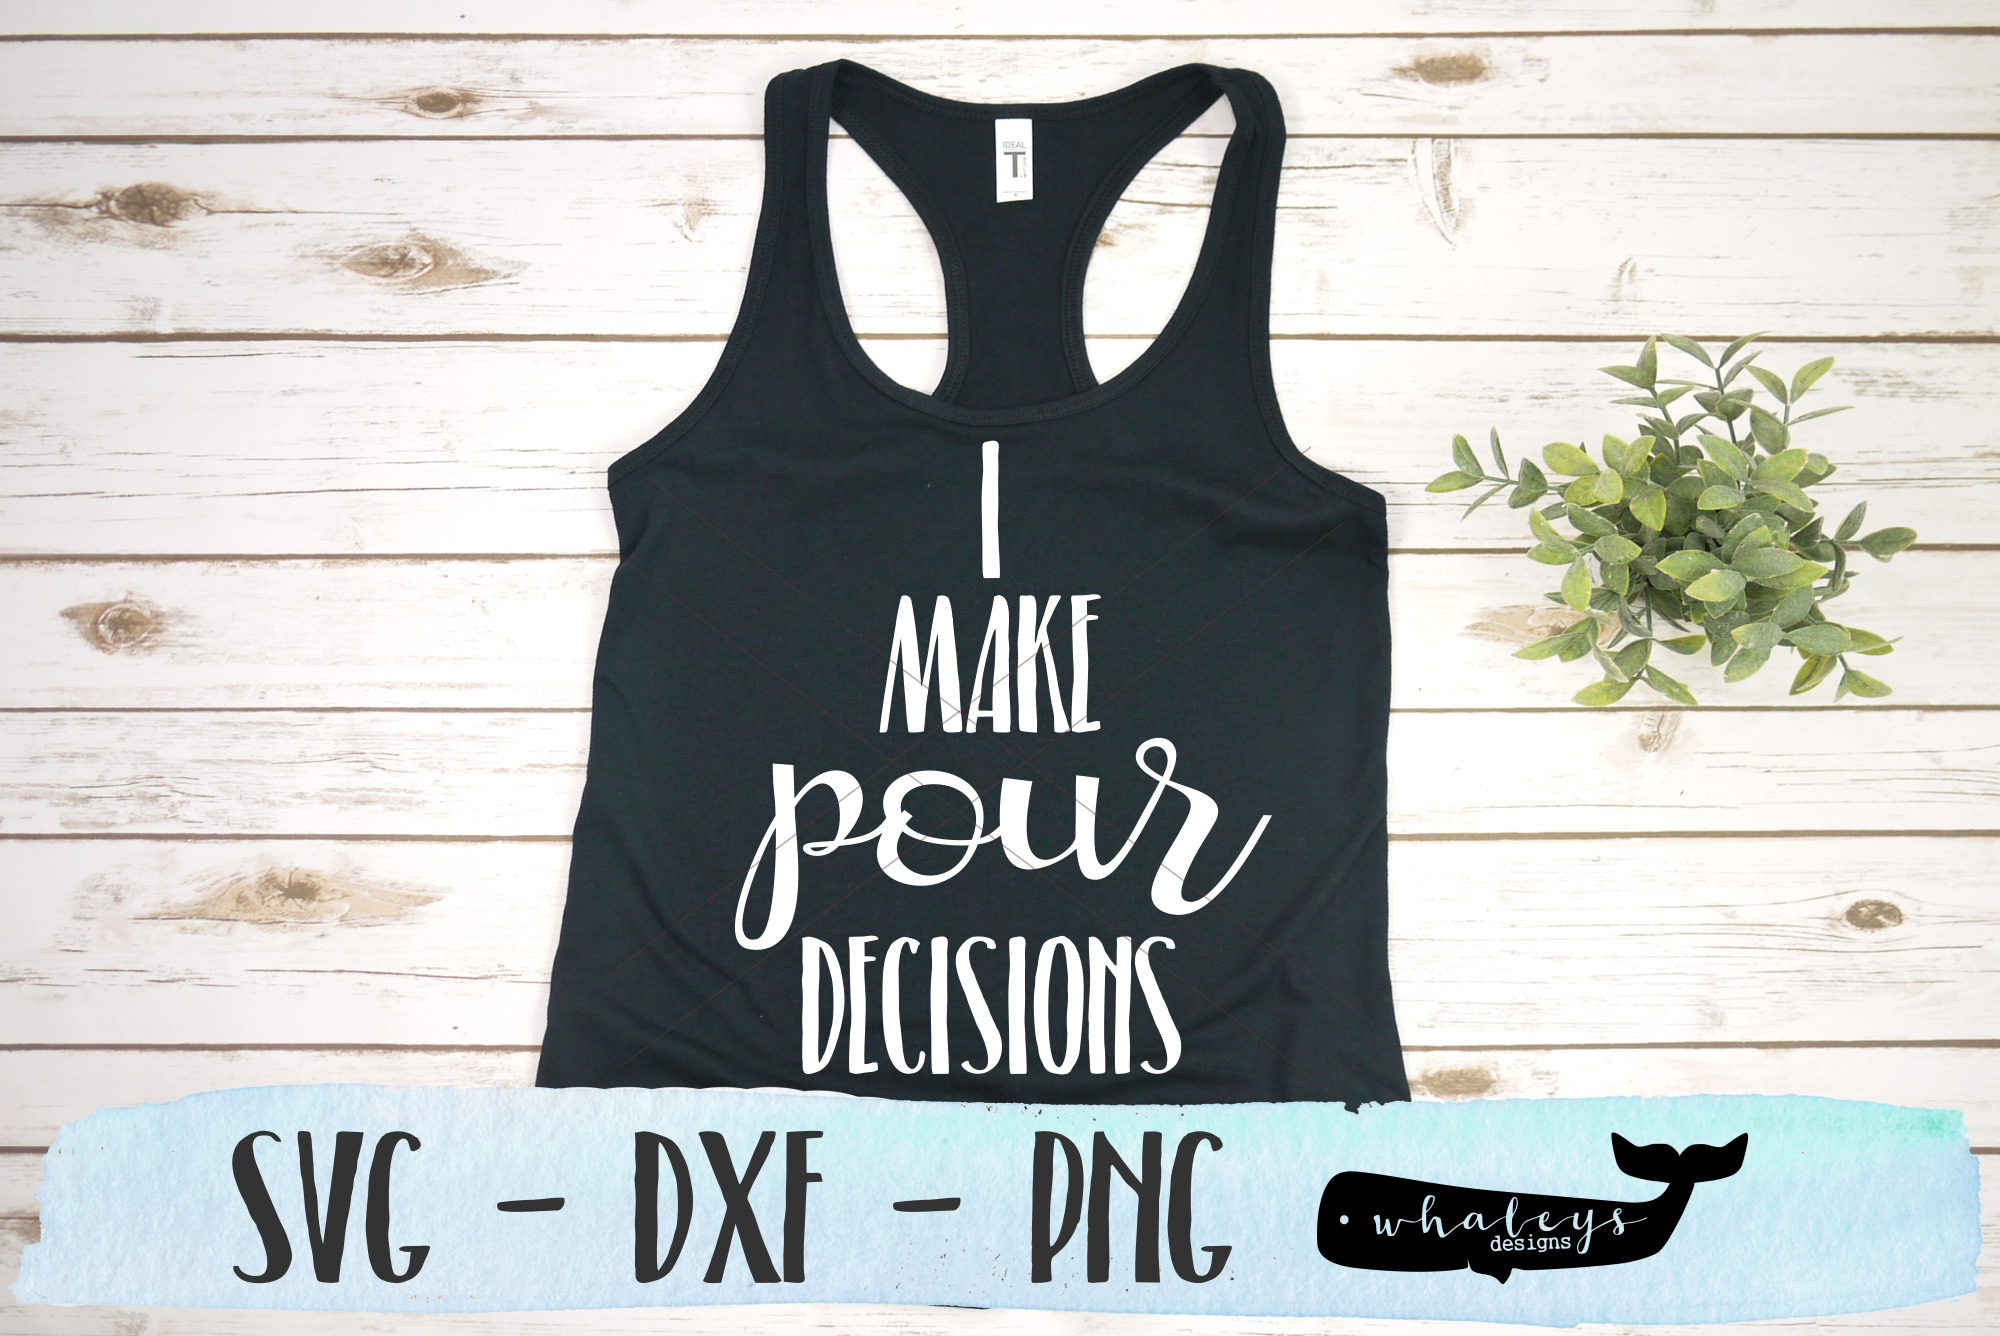 Download Free I Make Pour Decisions Svg Graphic By Whaleysdesigns Creative for Cricut Explore, Silhouette and other cutting machines.